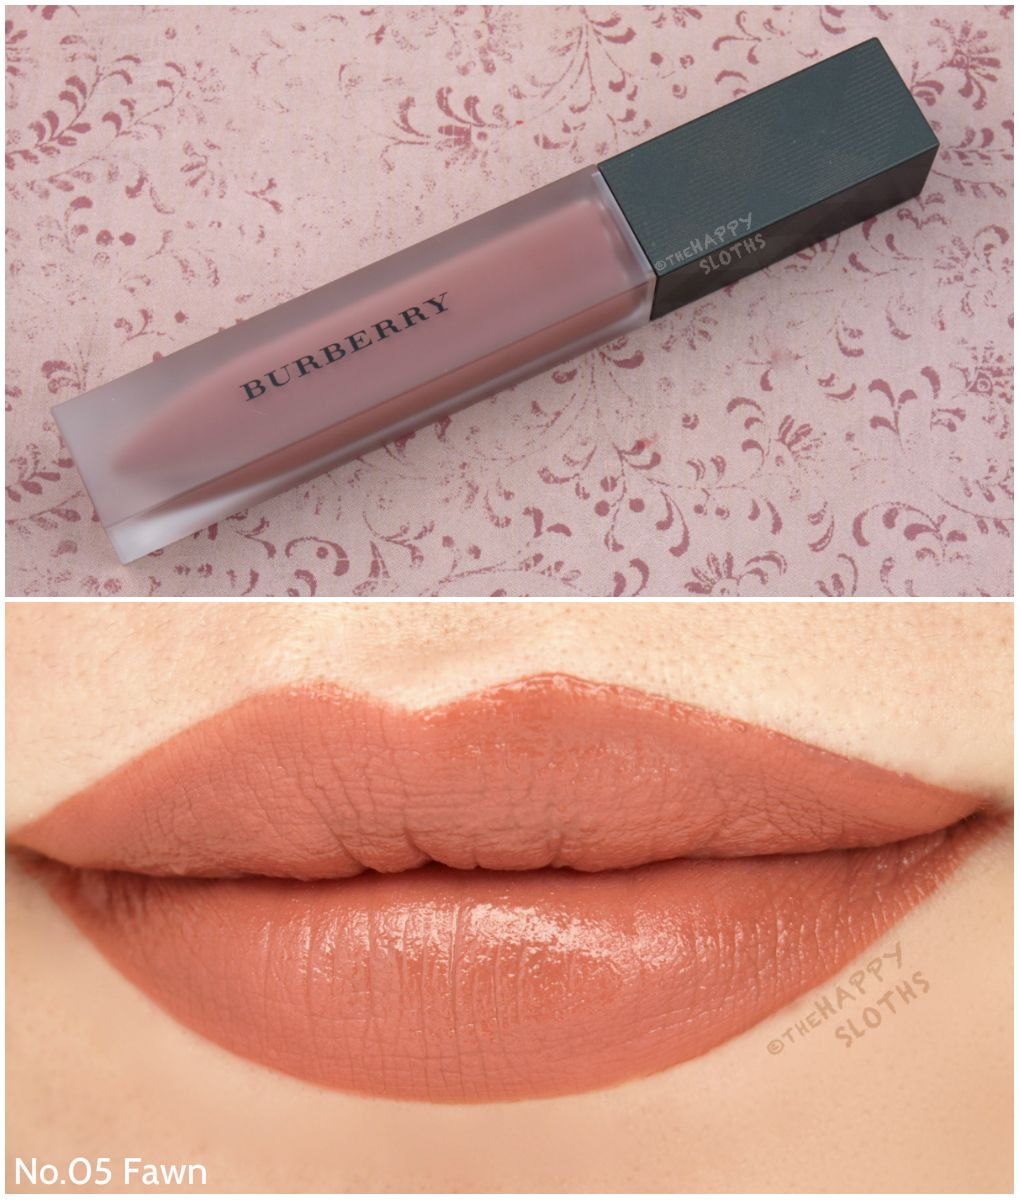 burberry lip velvet lipstick review